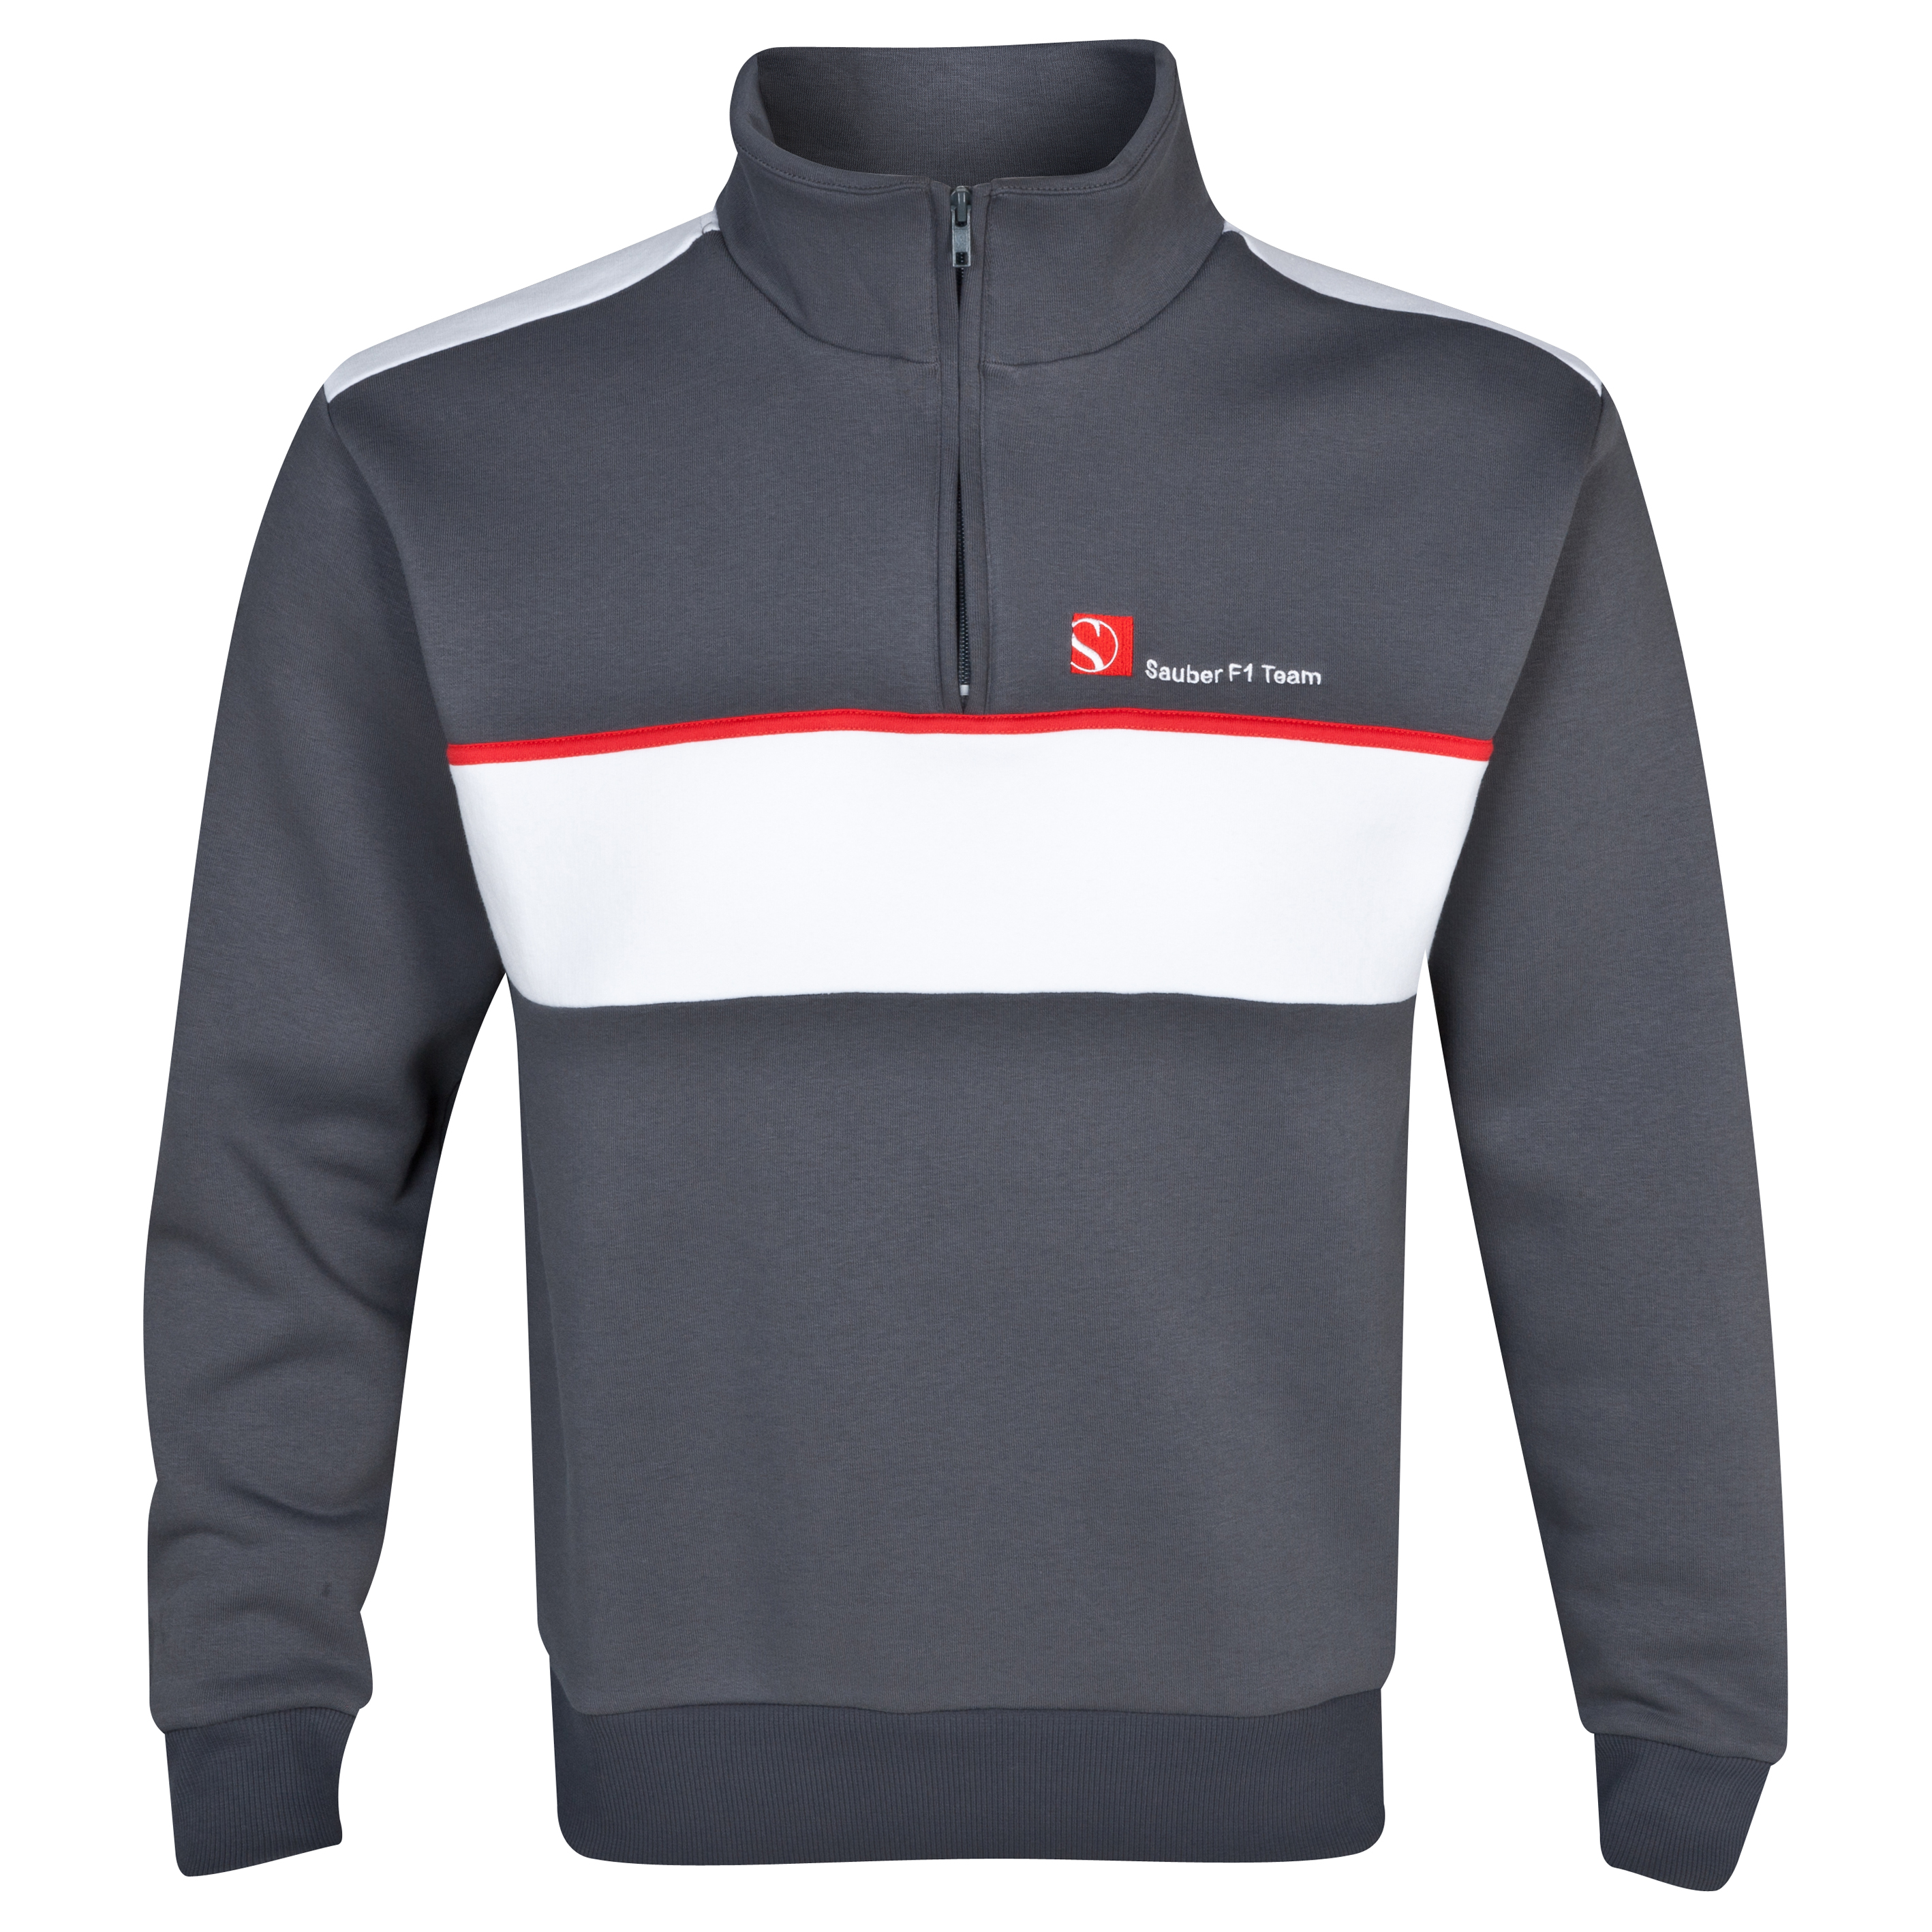 SAUBER F1 Team 2013 Team Sweater